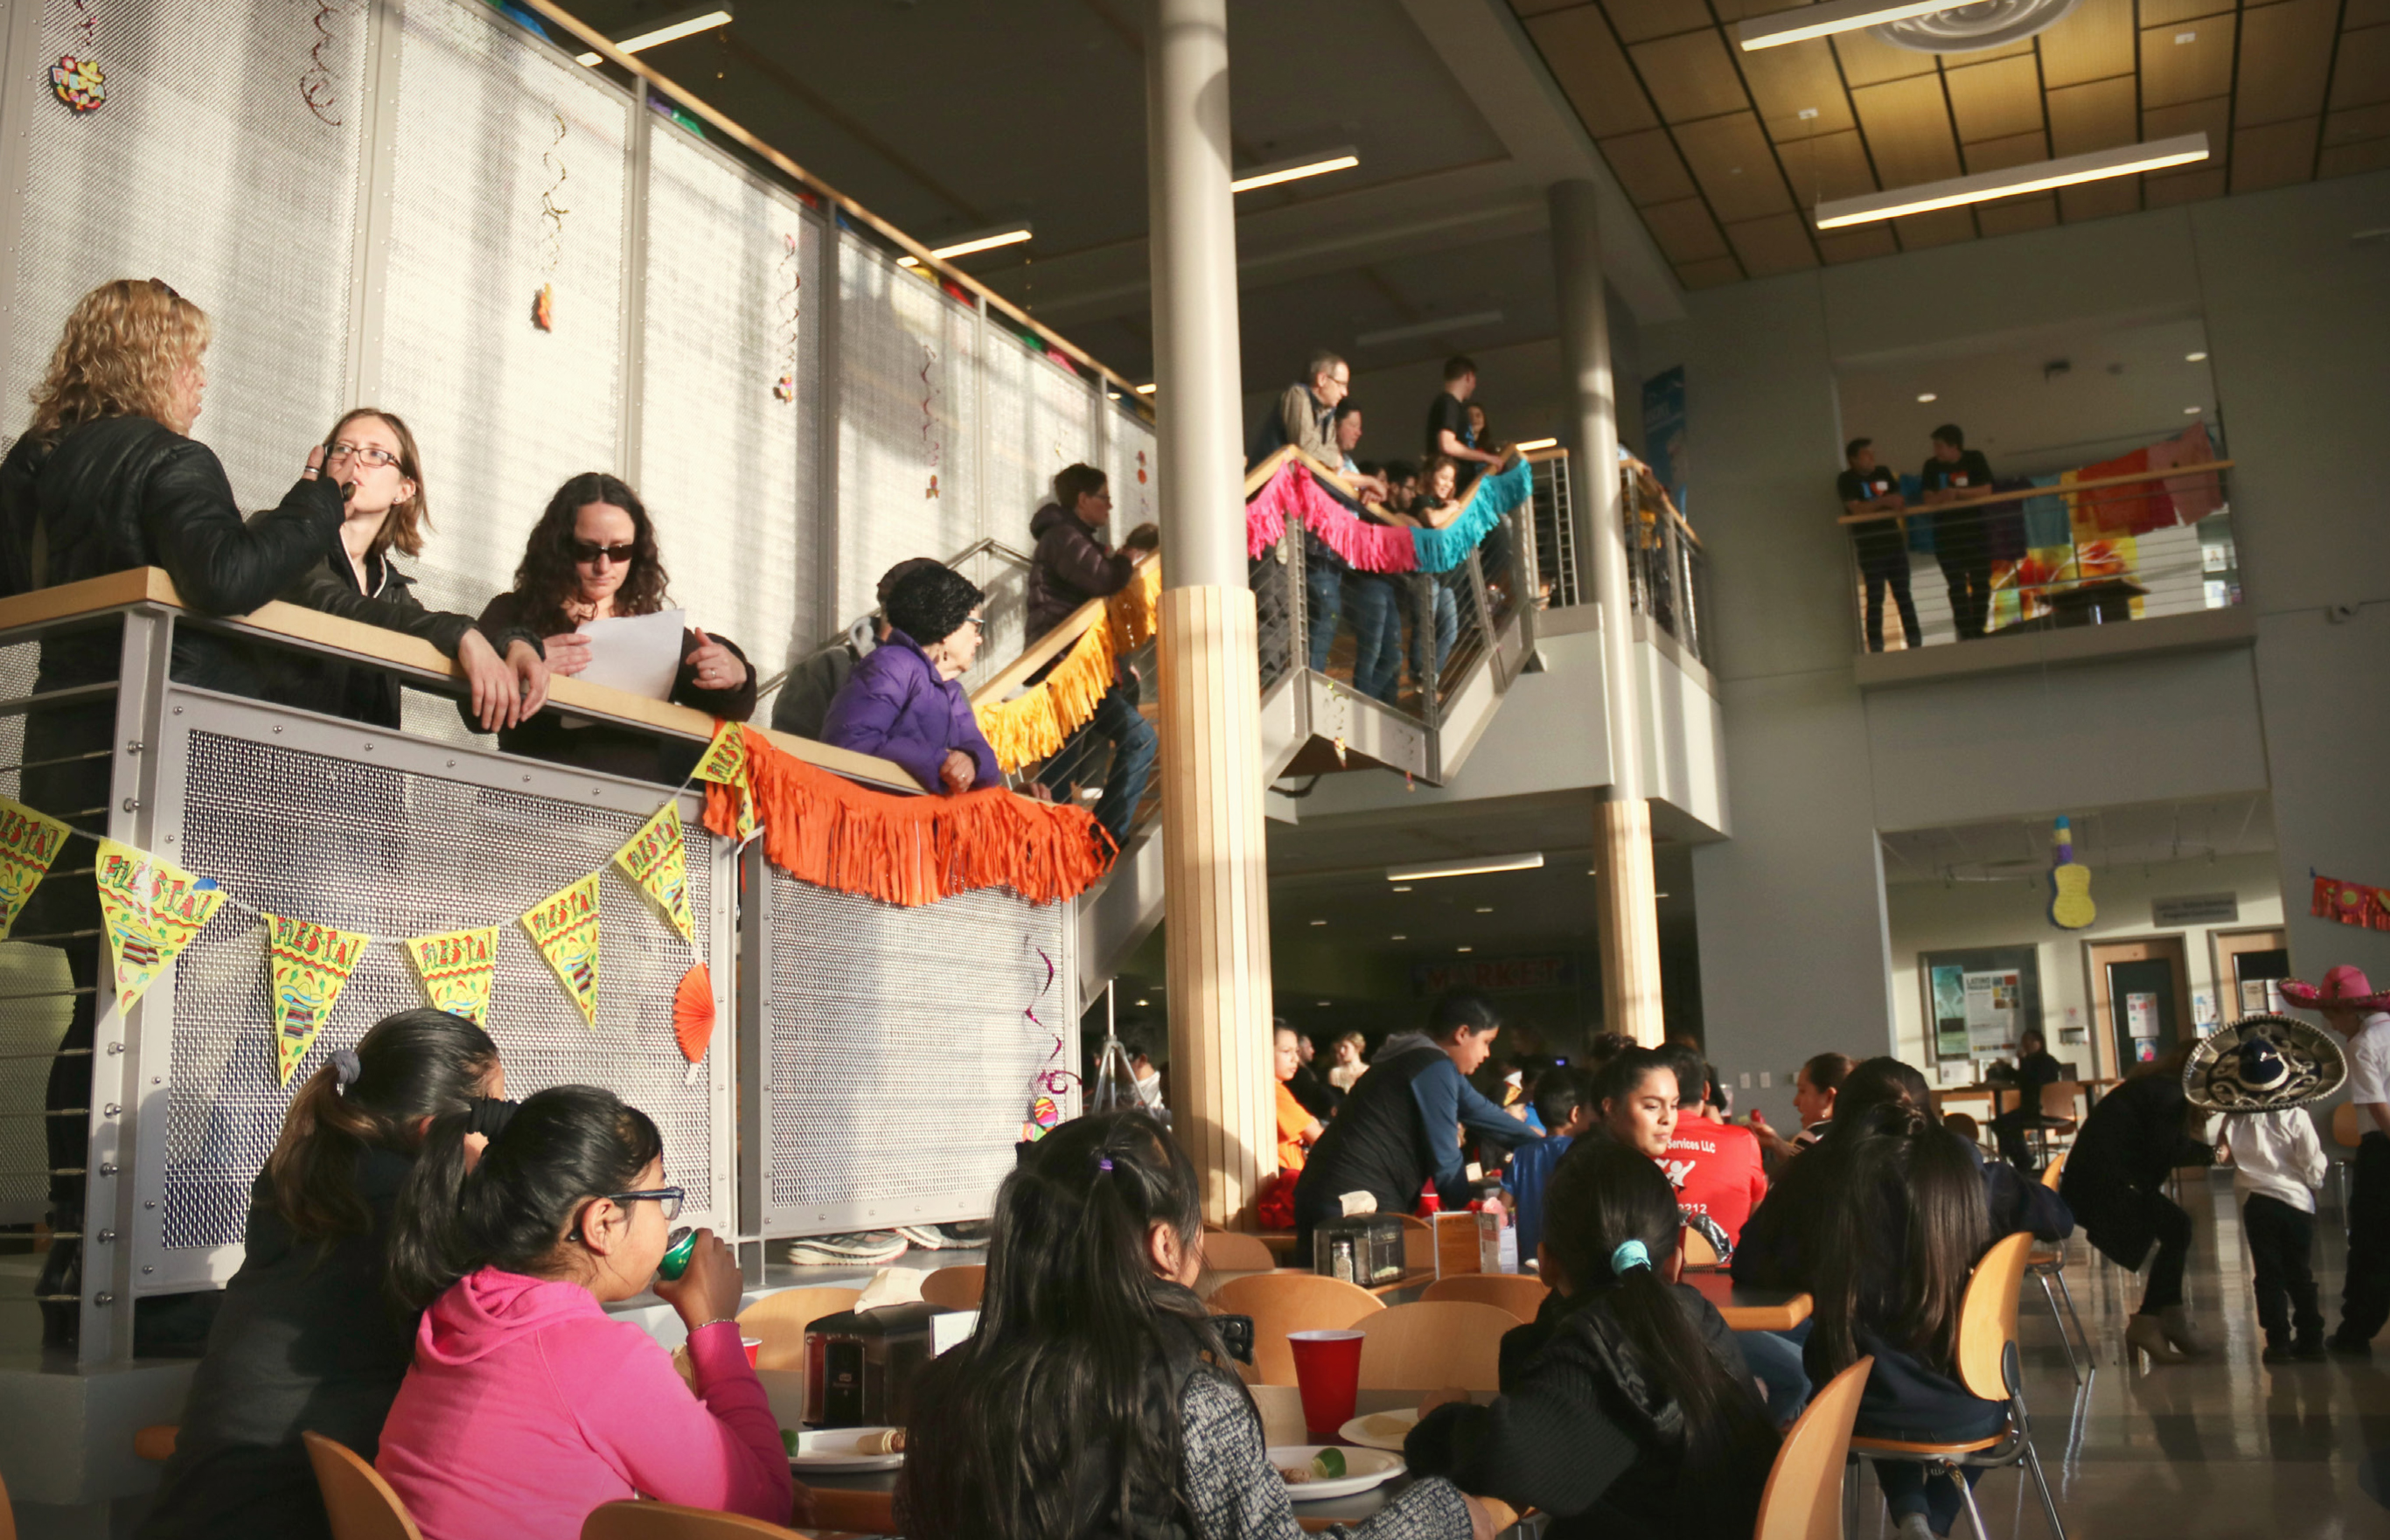 Attendees of the Latino Fiesta gather around cafeteria tables and on the stairs of the Campus Center to watch the dance performances.